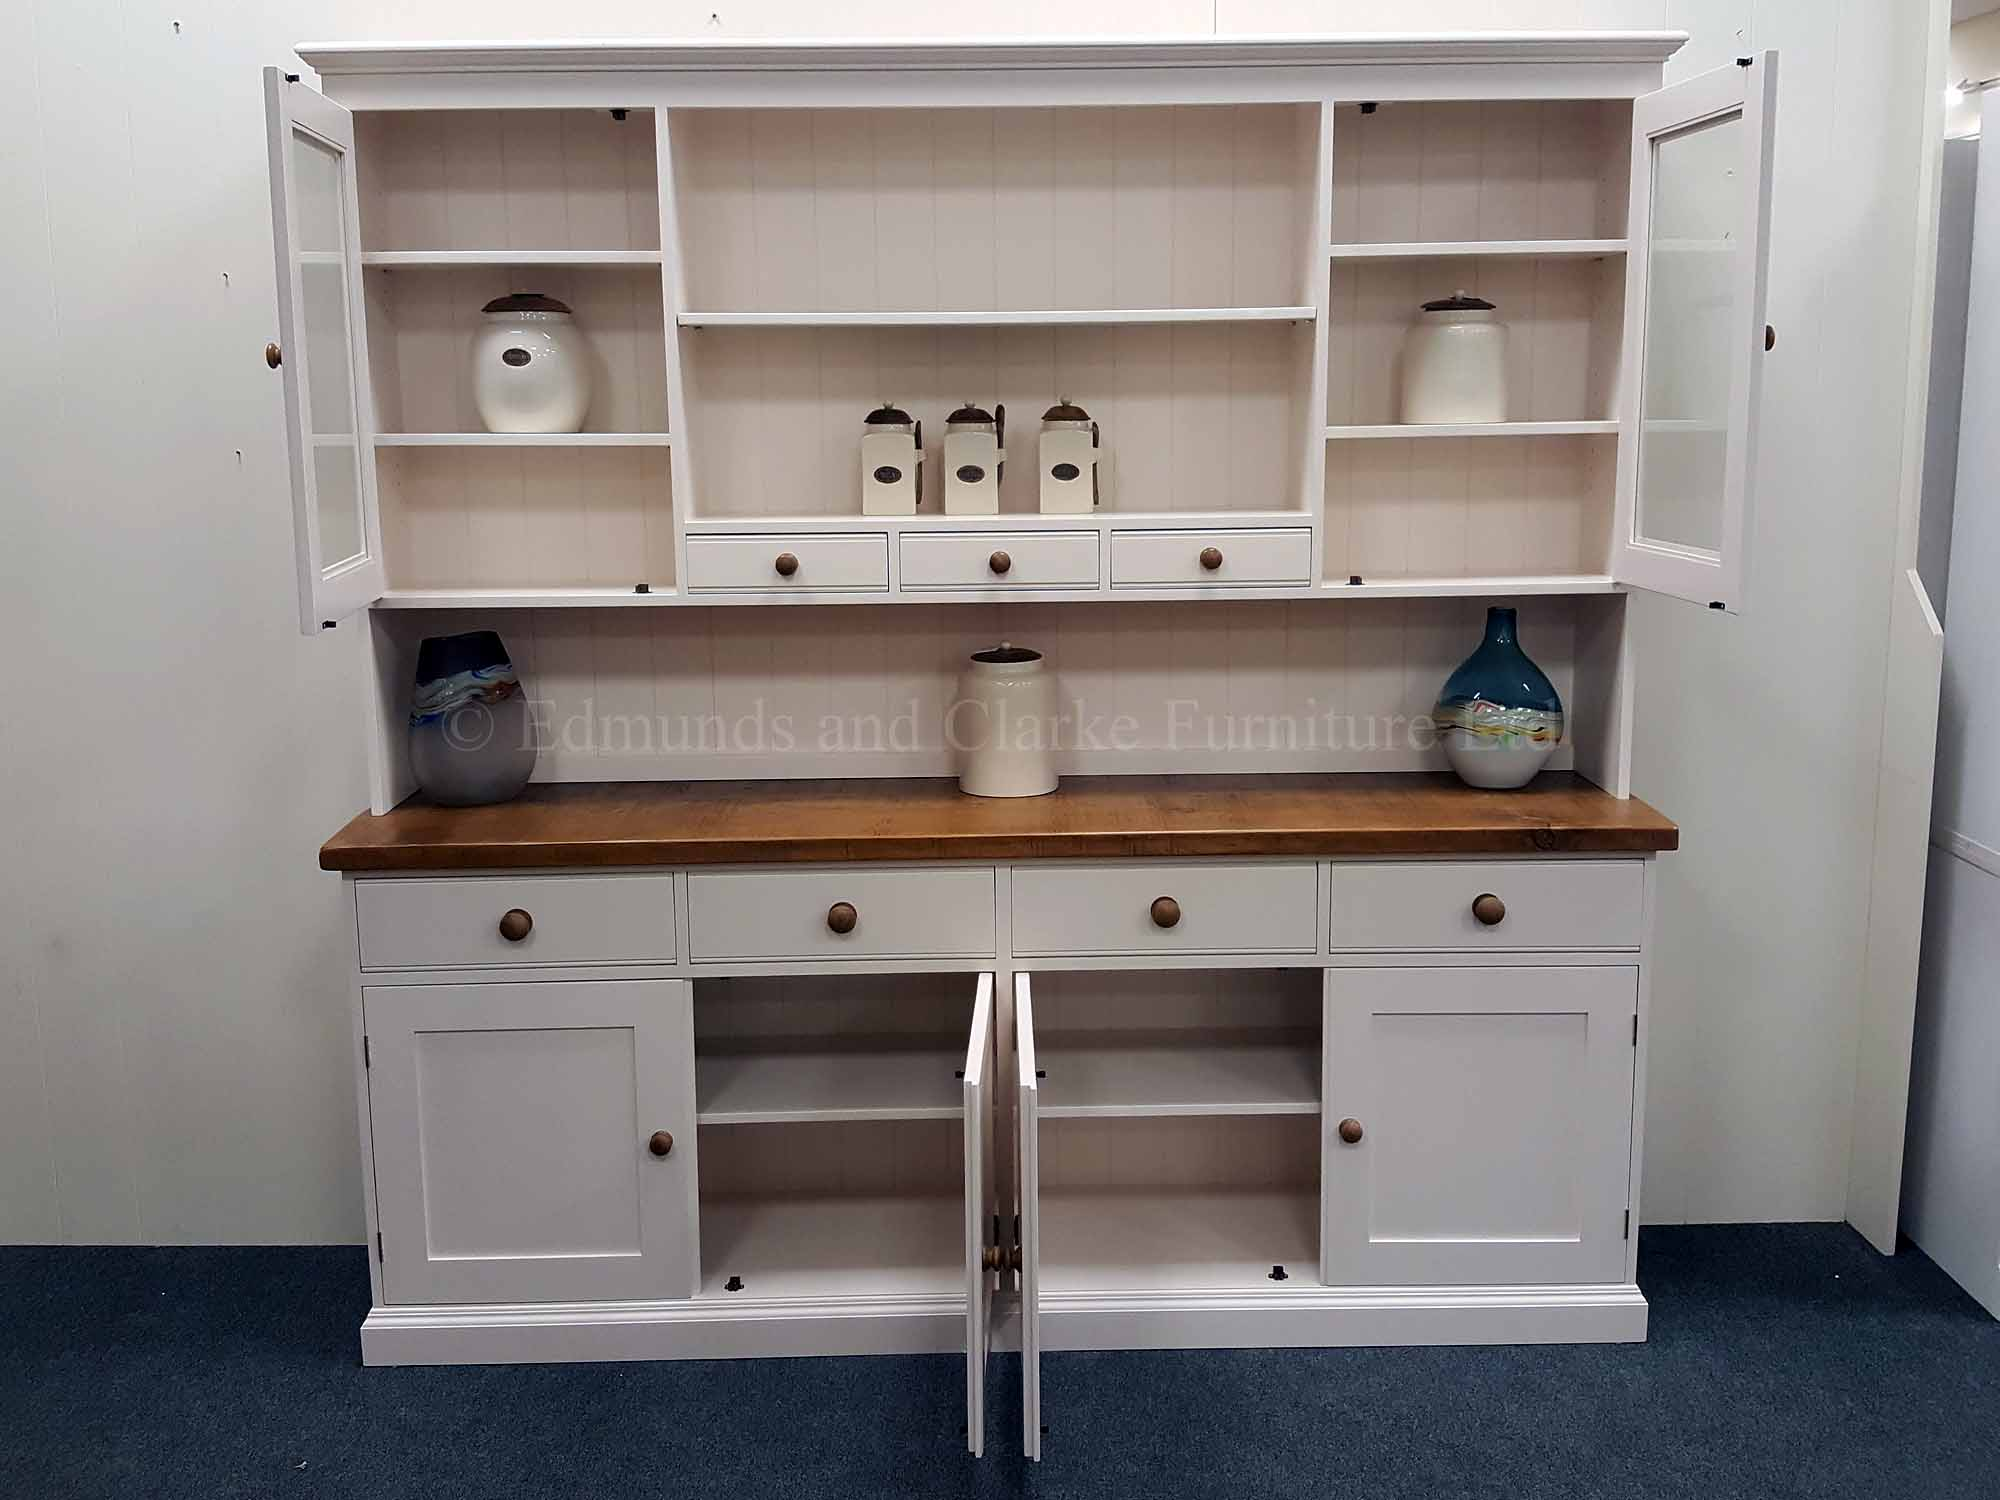 7ft plain painted kitchen dresser, choose your paint colour and tops